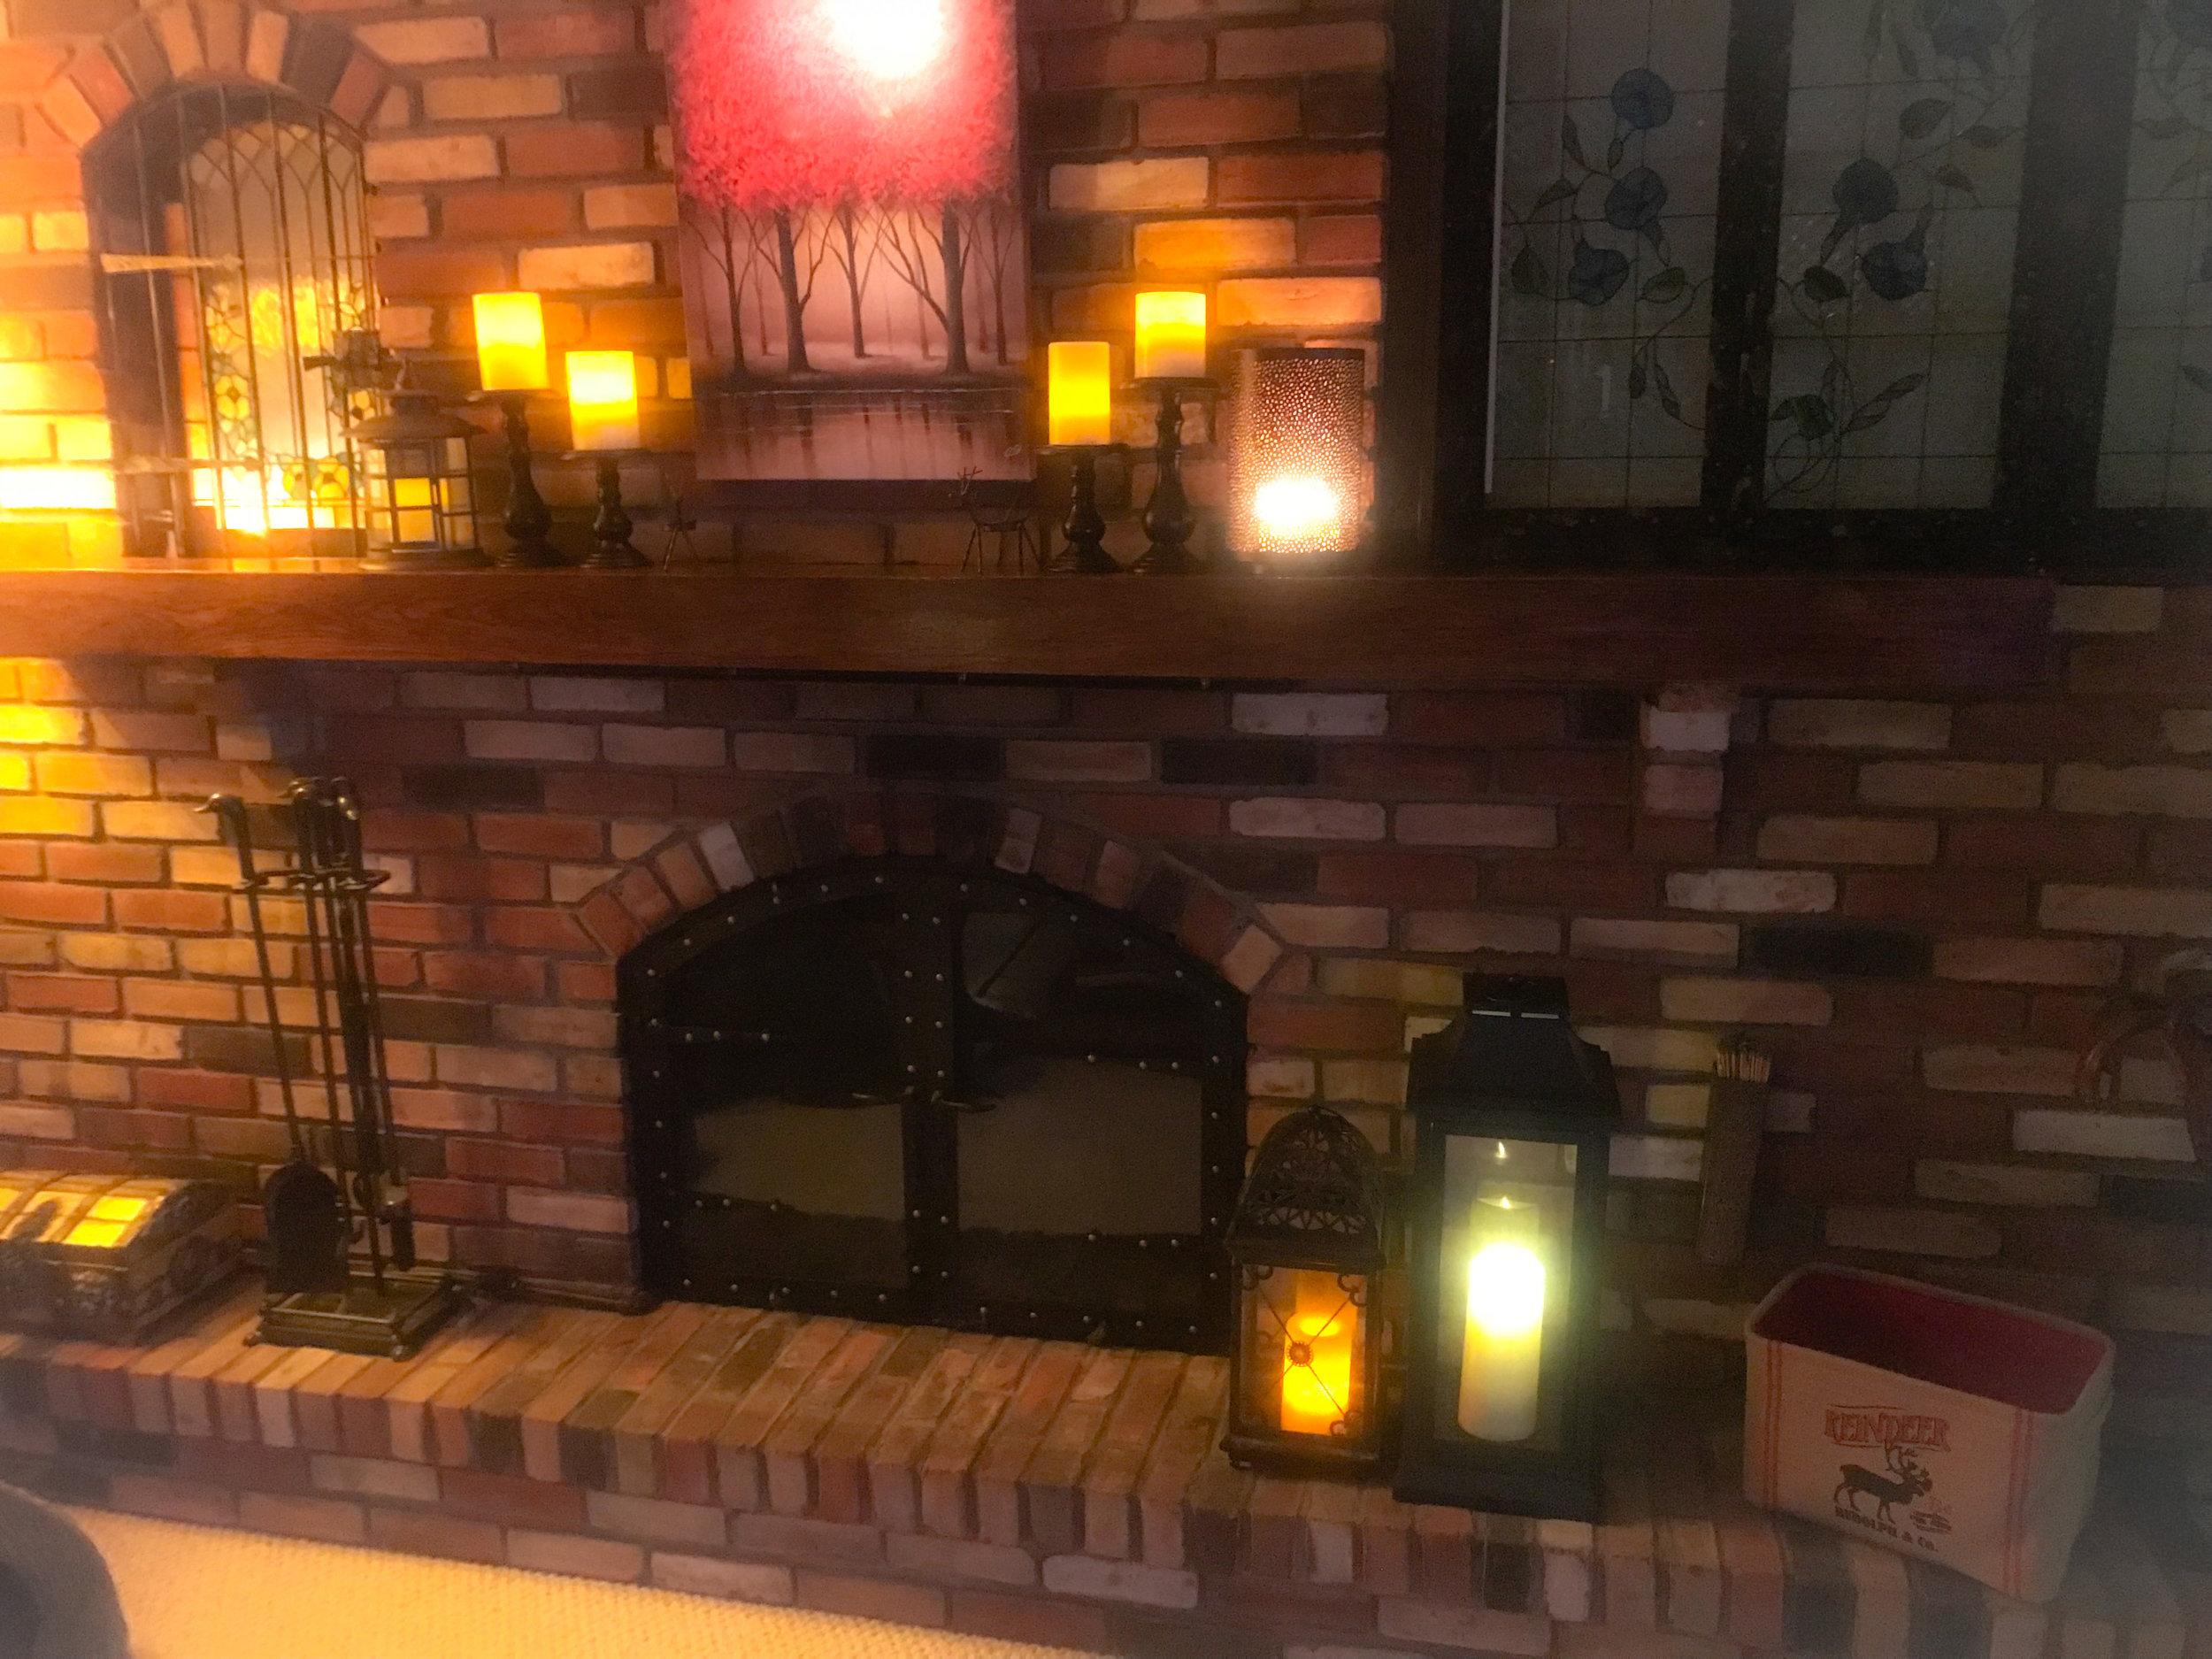 More flameless candles and amber lighting